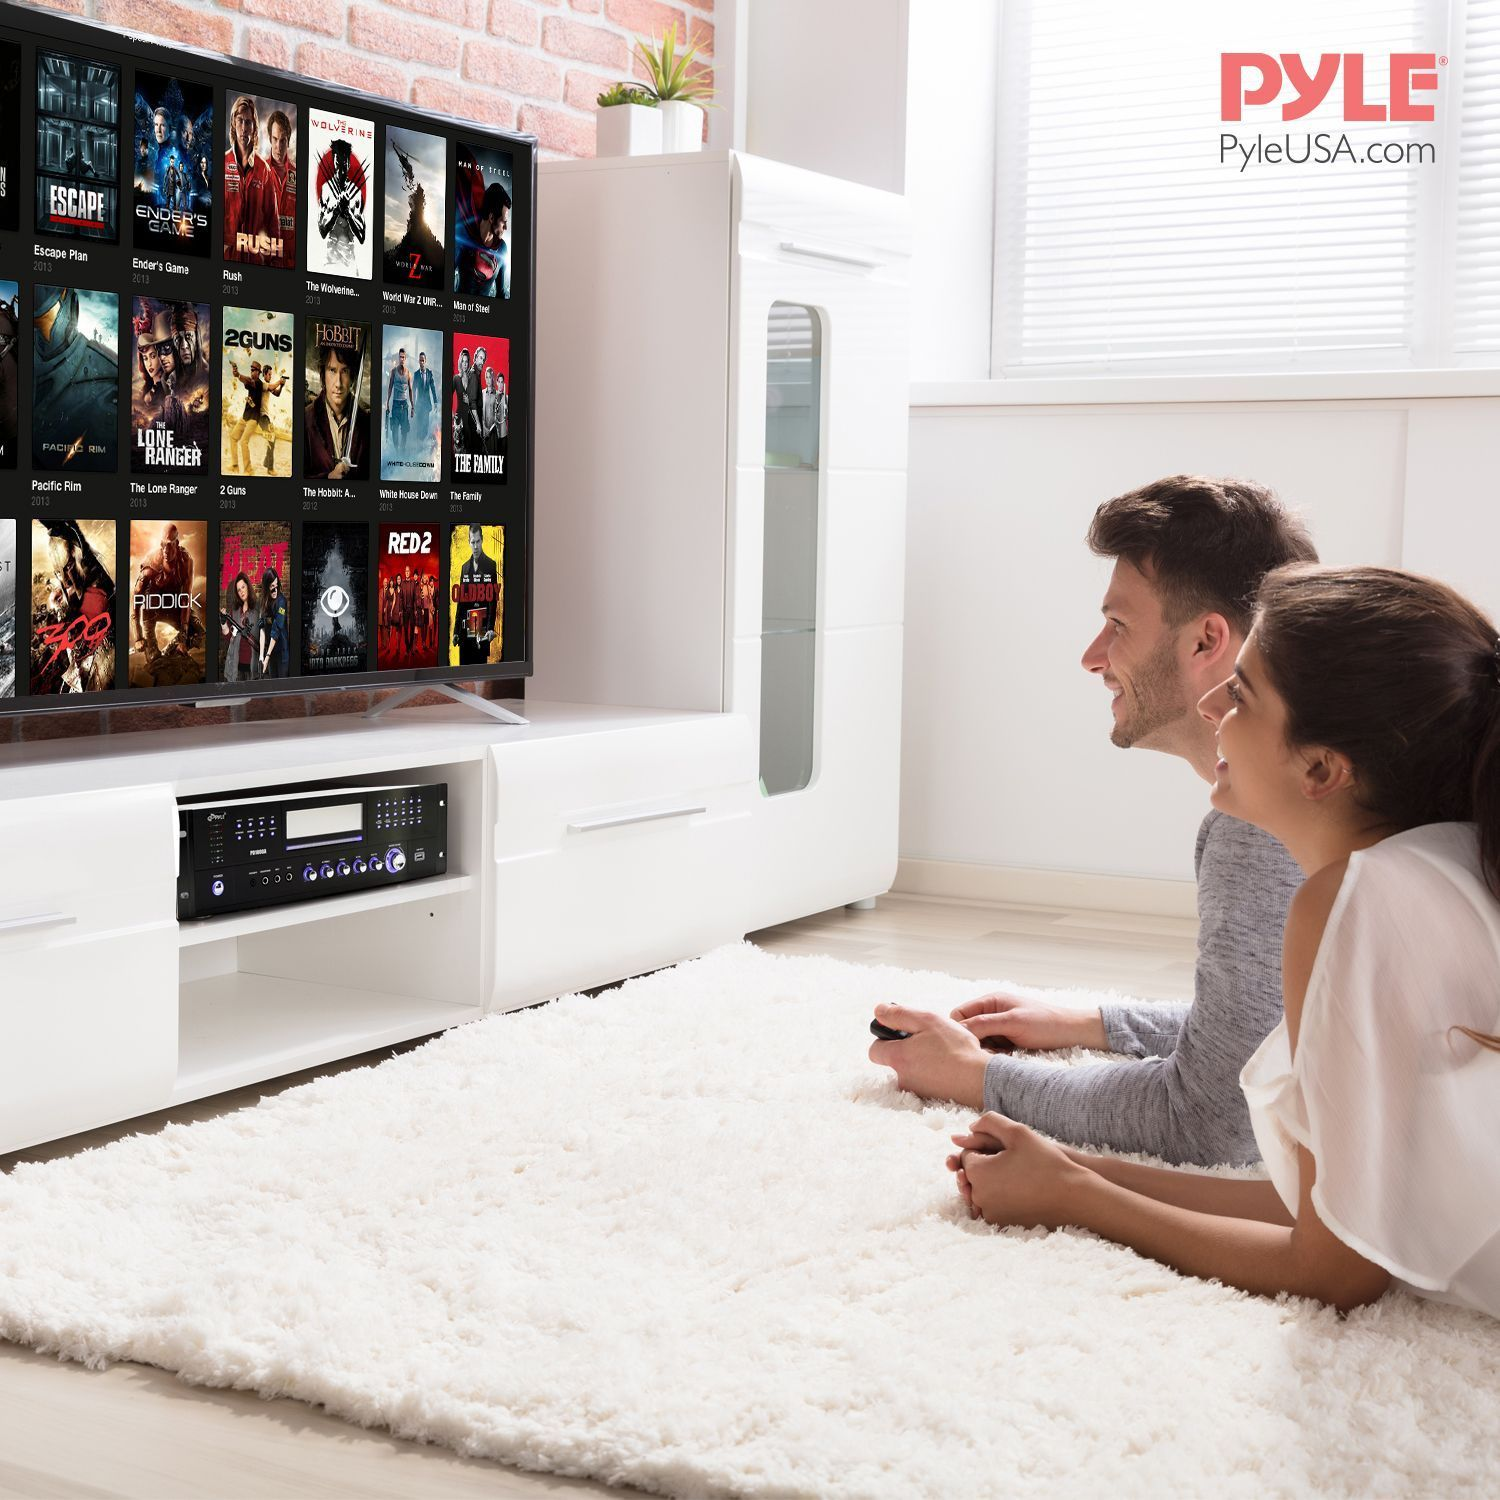 Pyle Amp W/ built in DVD player & AM/FM tuner 1000 watts (PD1000A)